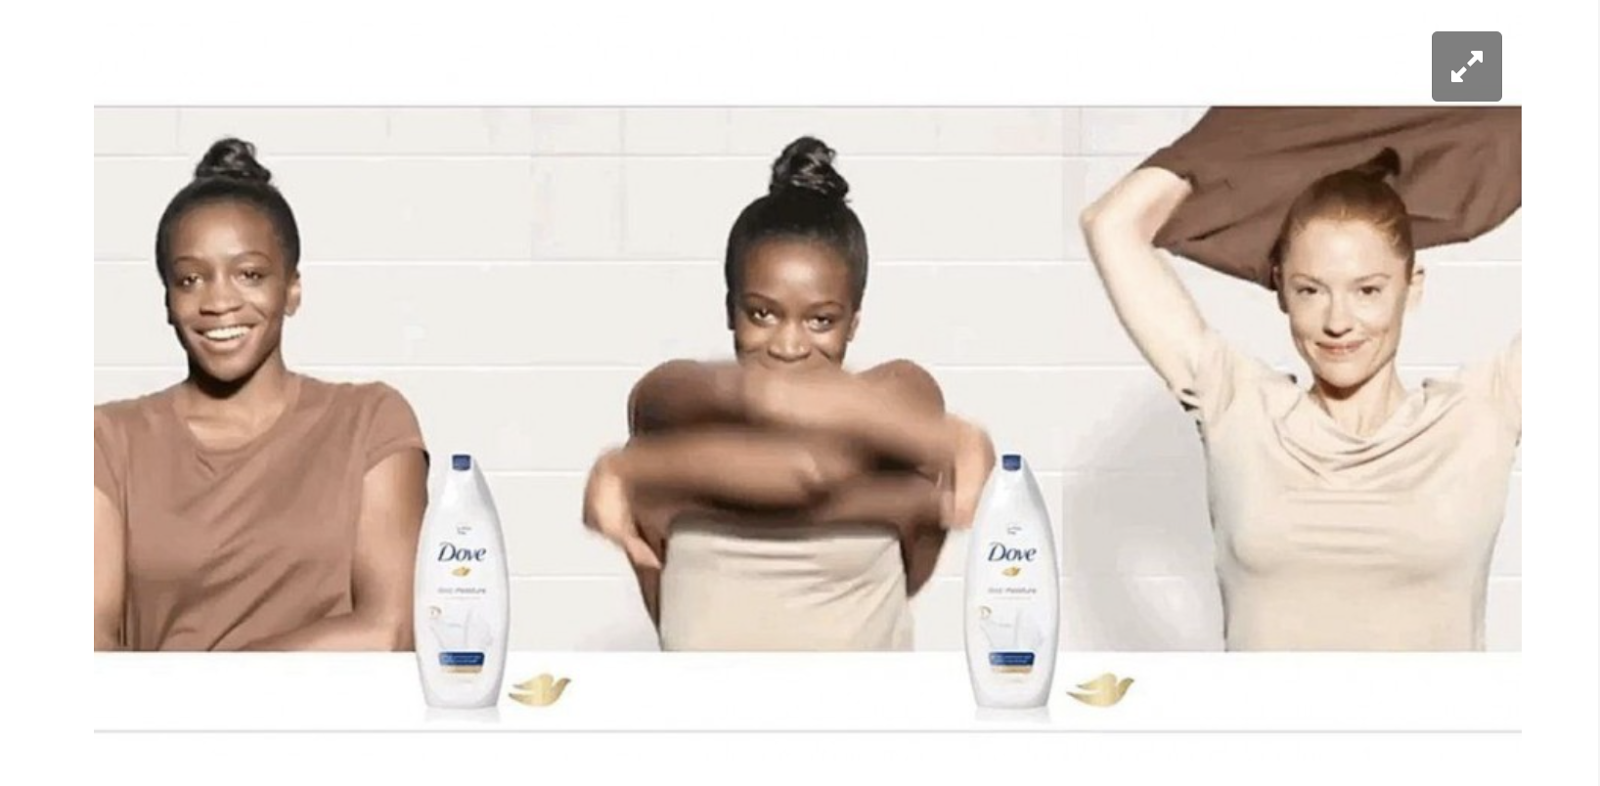 Dove ad for mobile apps which crossed the line